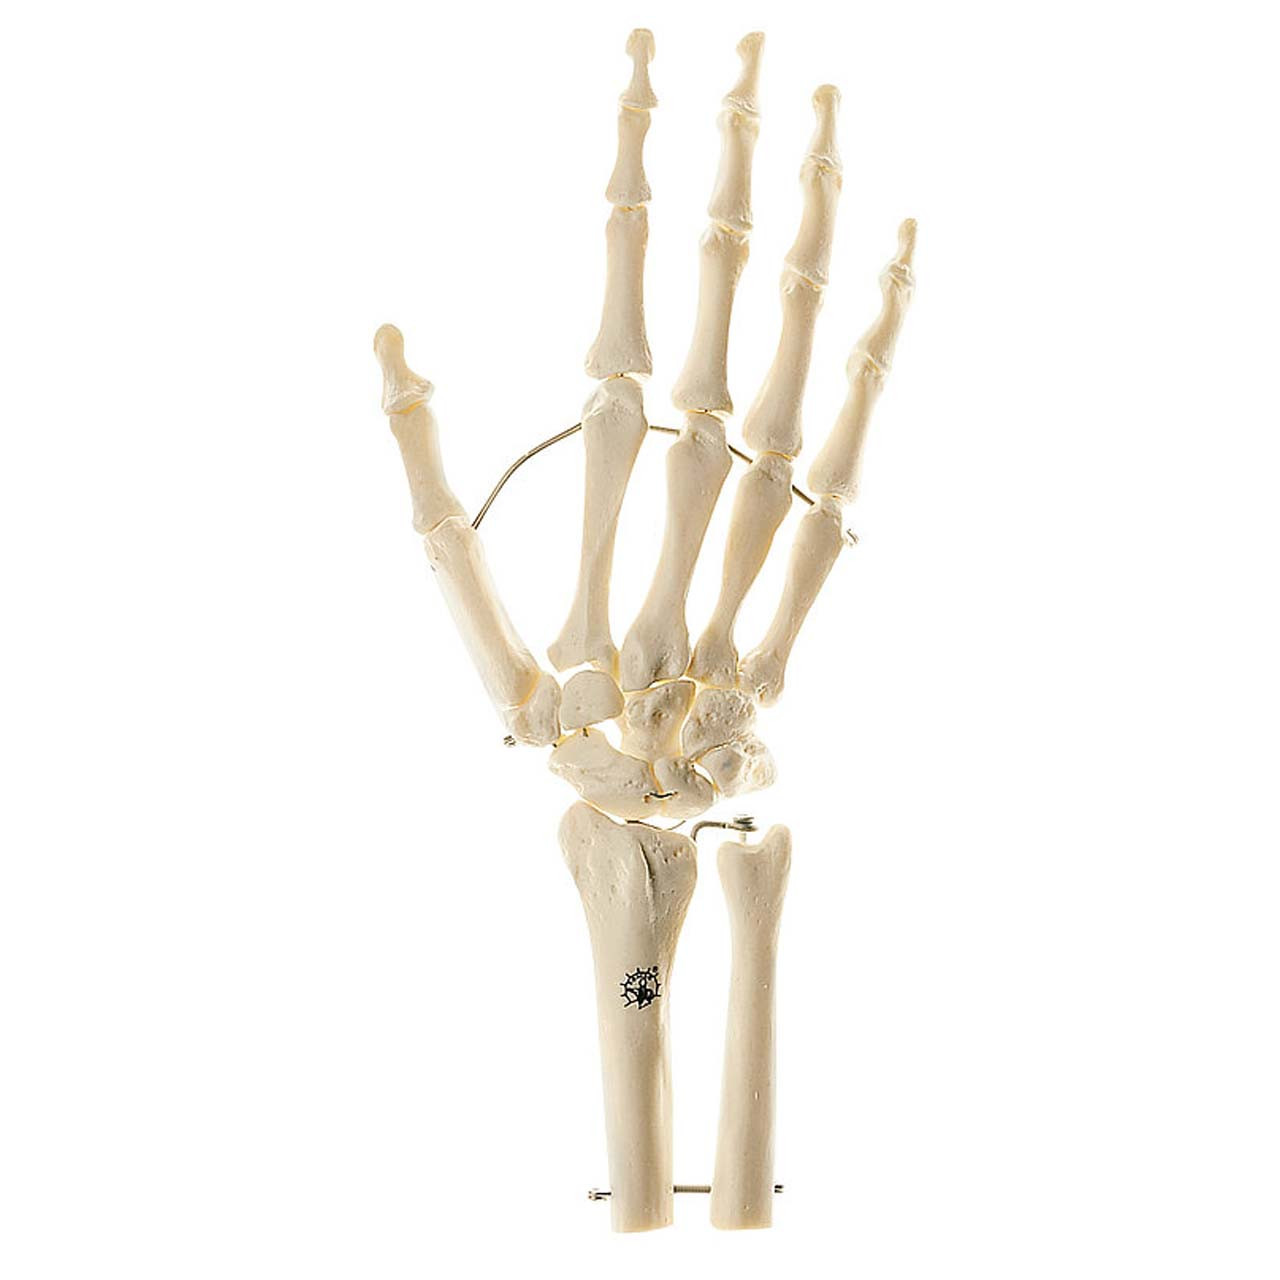 QS31/1 - Skeleton of Hand with Base of Forearm (Mounted on wire)